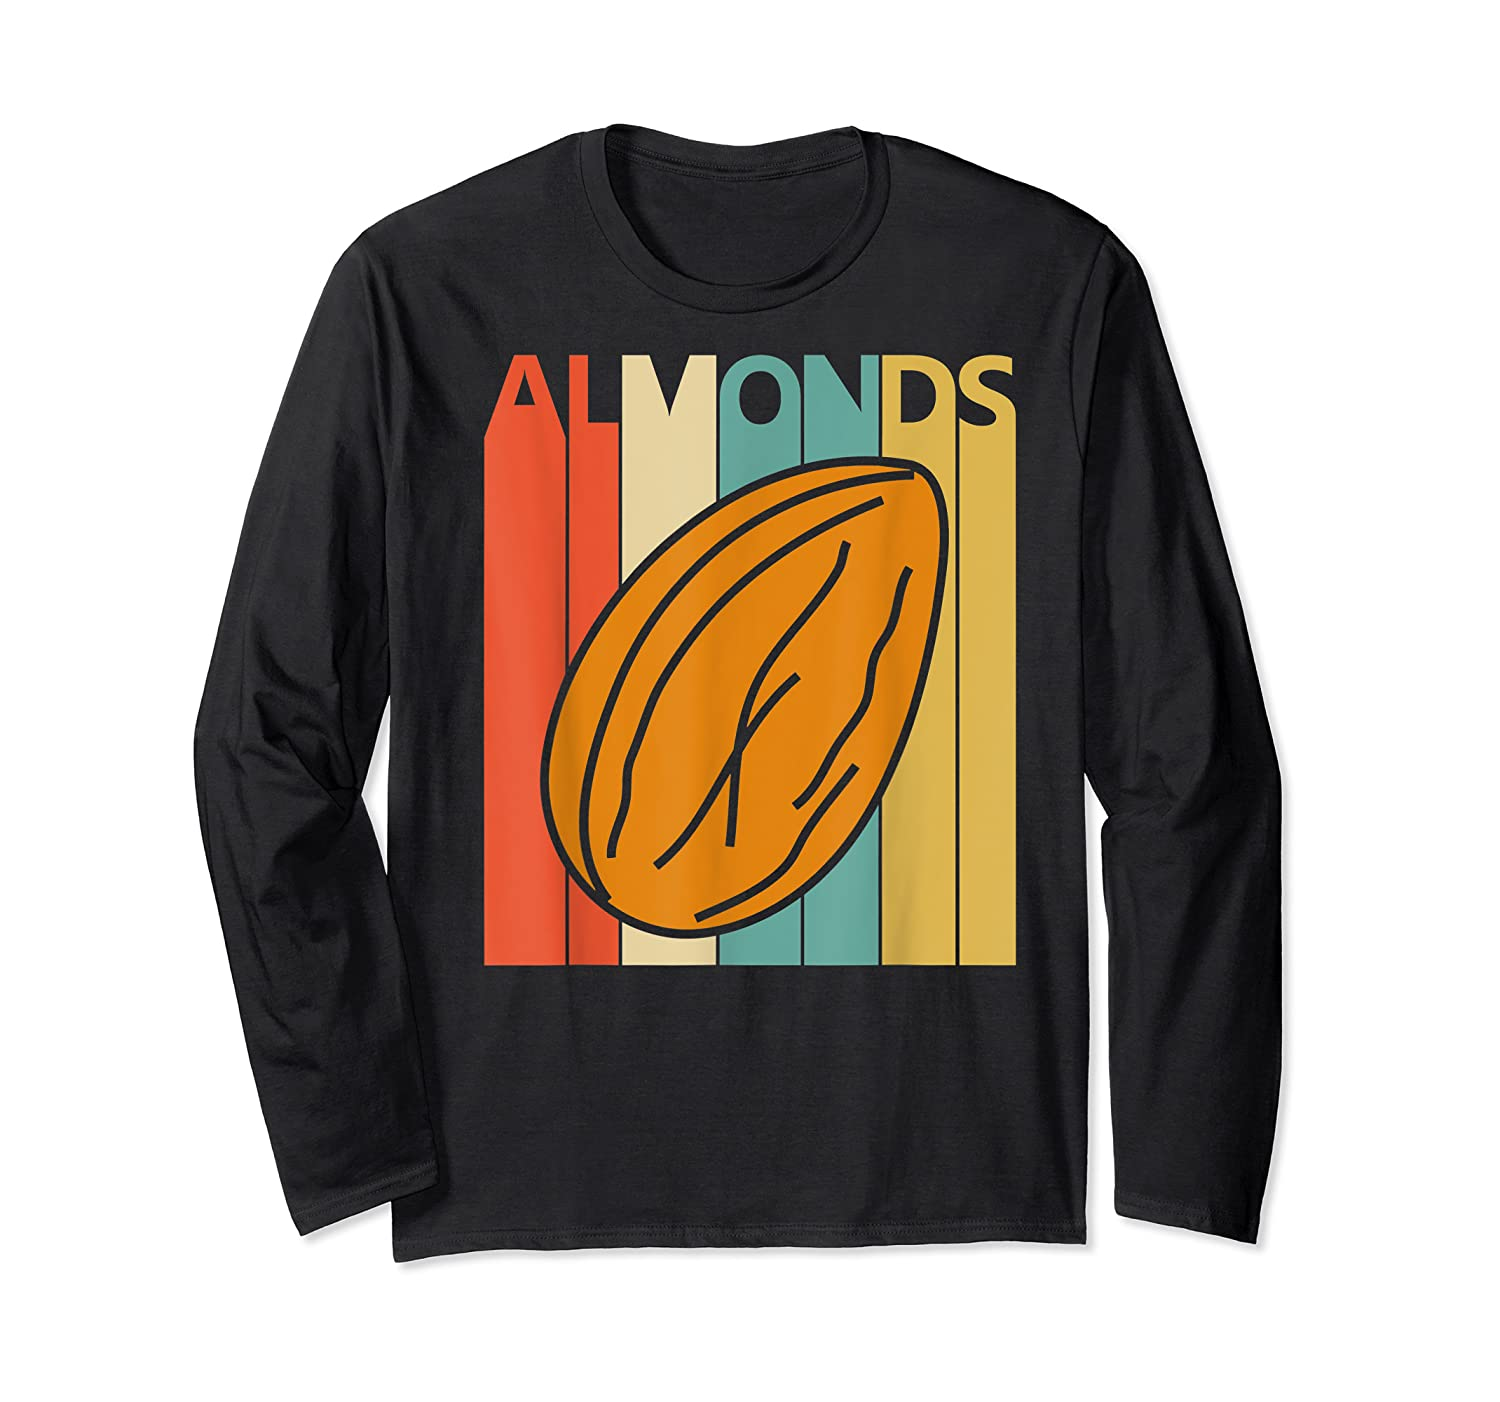 Vintage Retro Almonds Almond Nuts Gift Shirts Long Sleeve T-shirt